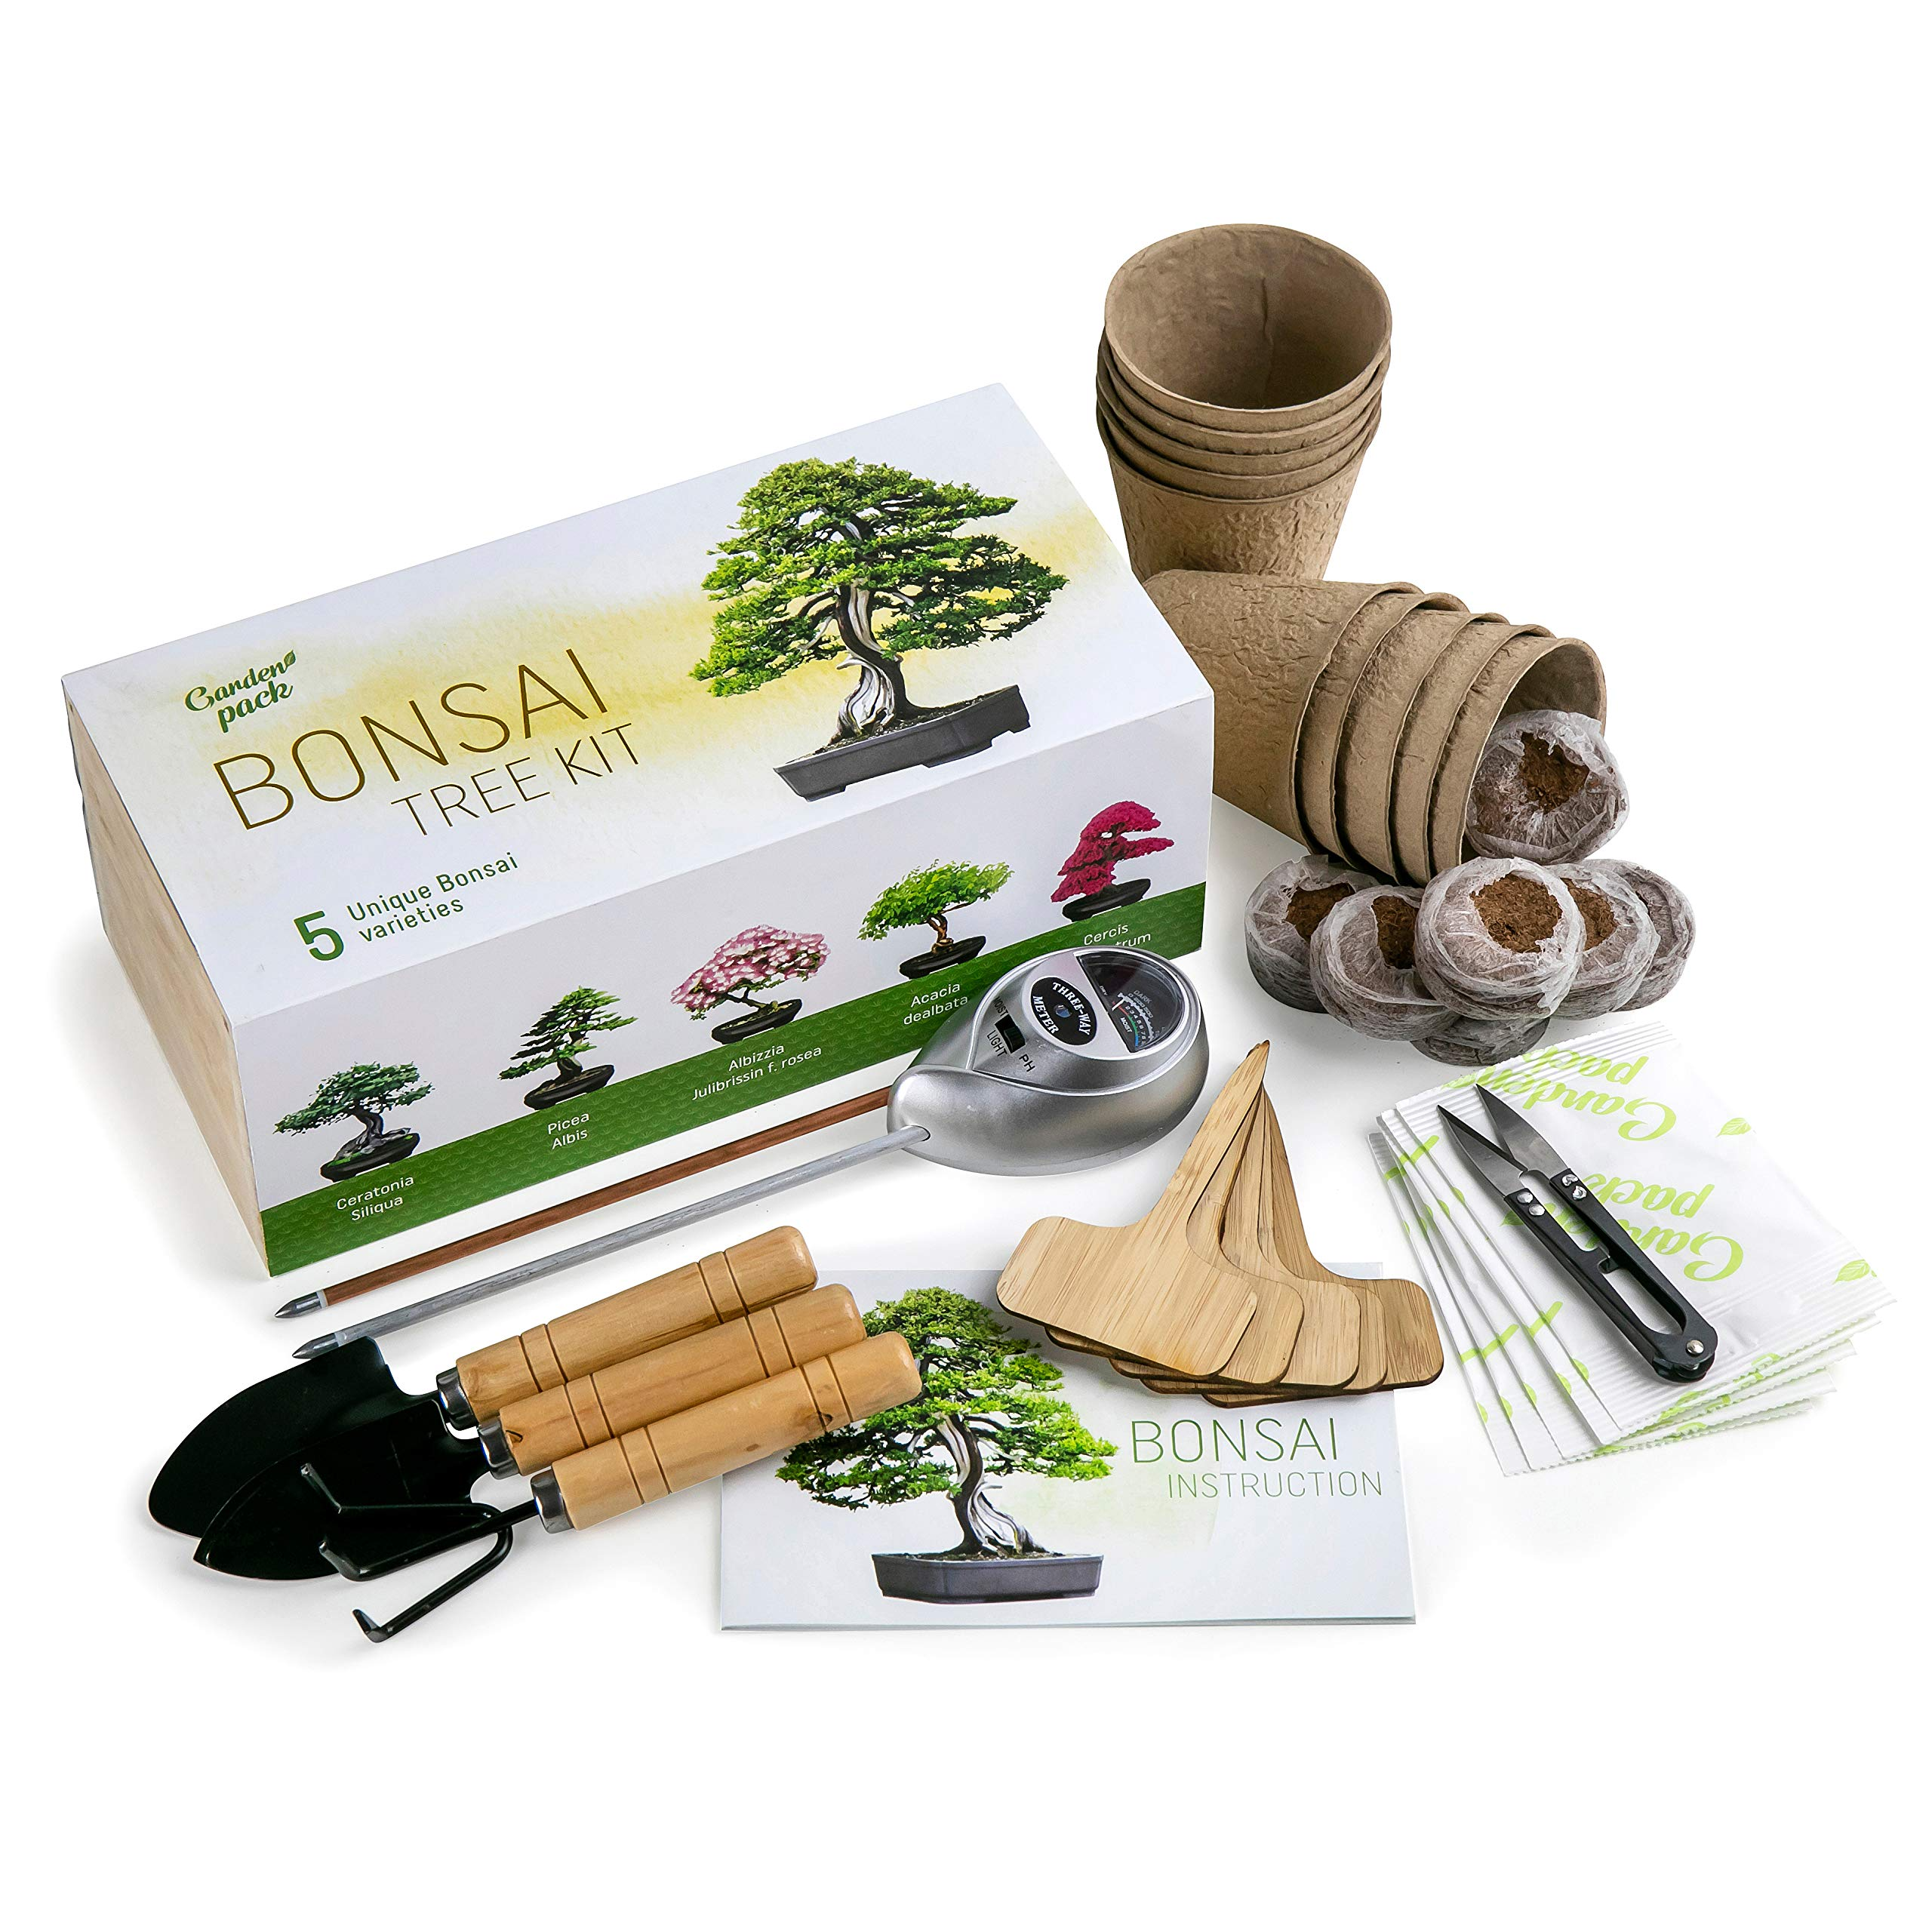 Grow Your Own Bonsai Tree Kit by Garden Pack - Bonsai Trees to Grow 5 Different Species - Gardening Gift Idea, Wood Box, Gardening Accessories